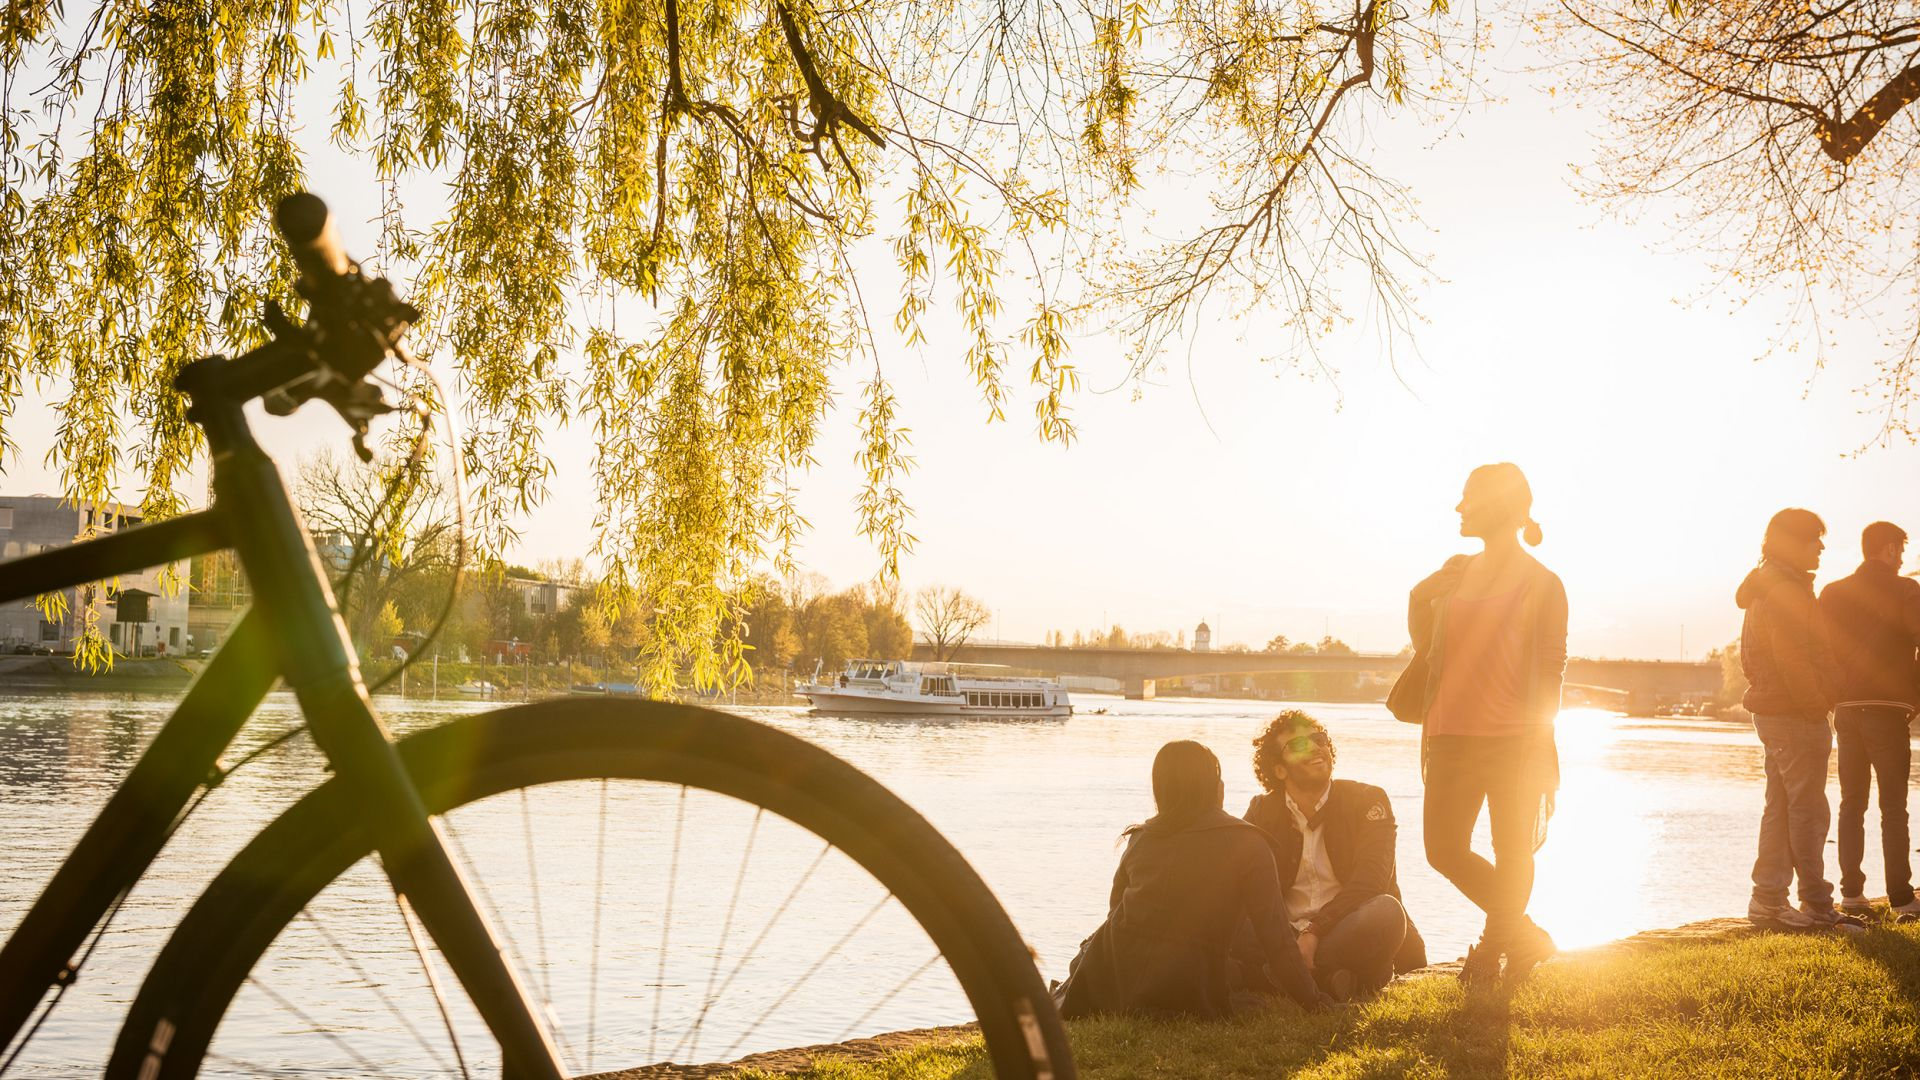 Lake Constance: Relaxing on the shore in the evening sun